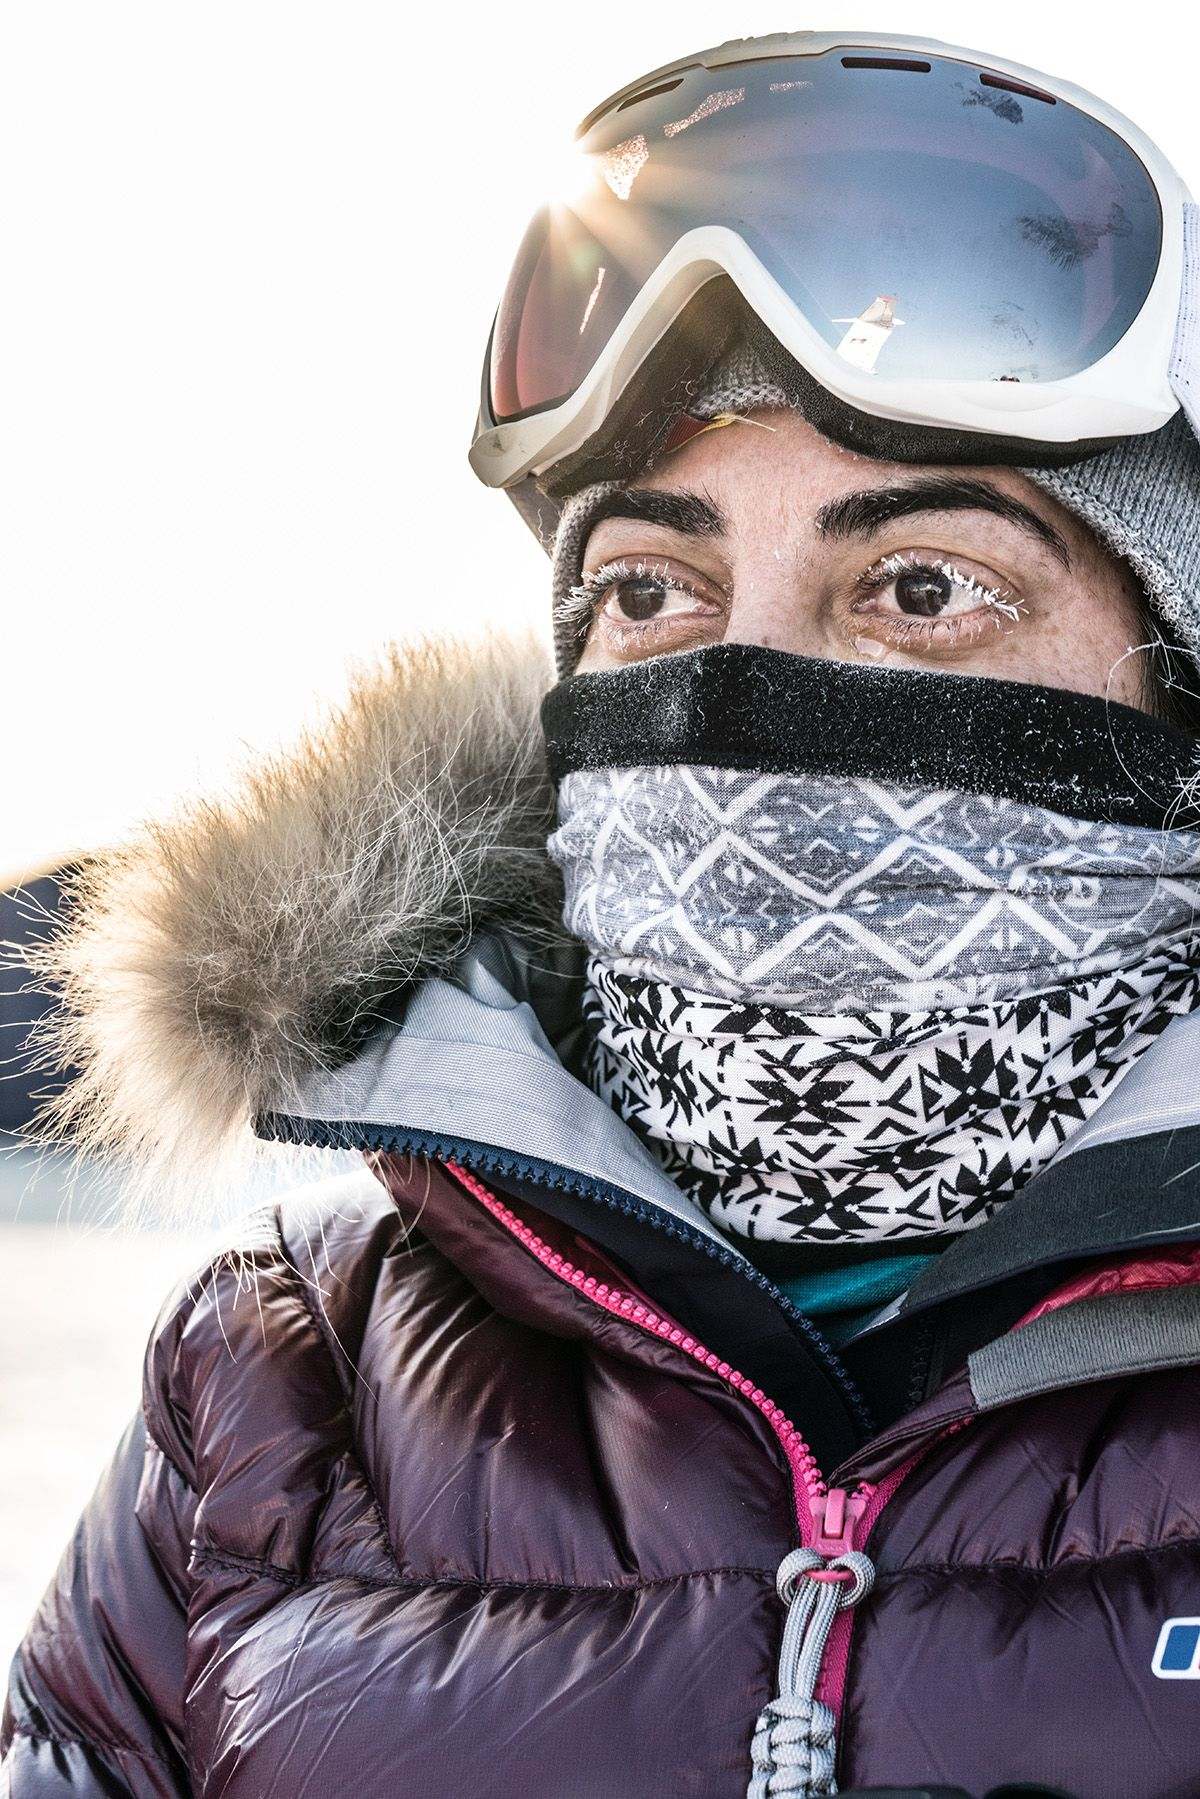 21.-A-frozen-tear-and-frozen-eye-lashes-on-Misba-Khan-before-boarding-the-helicopter-at-89-degrees-North-Photo-by-Renan-Ozturk